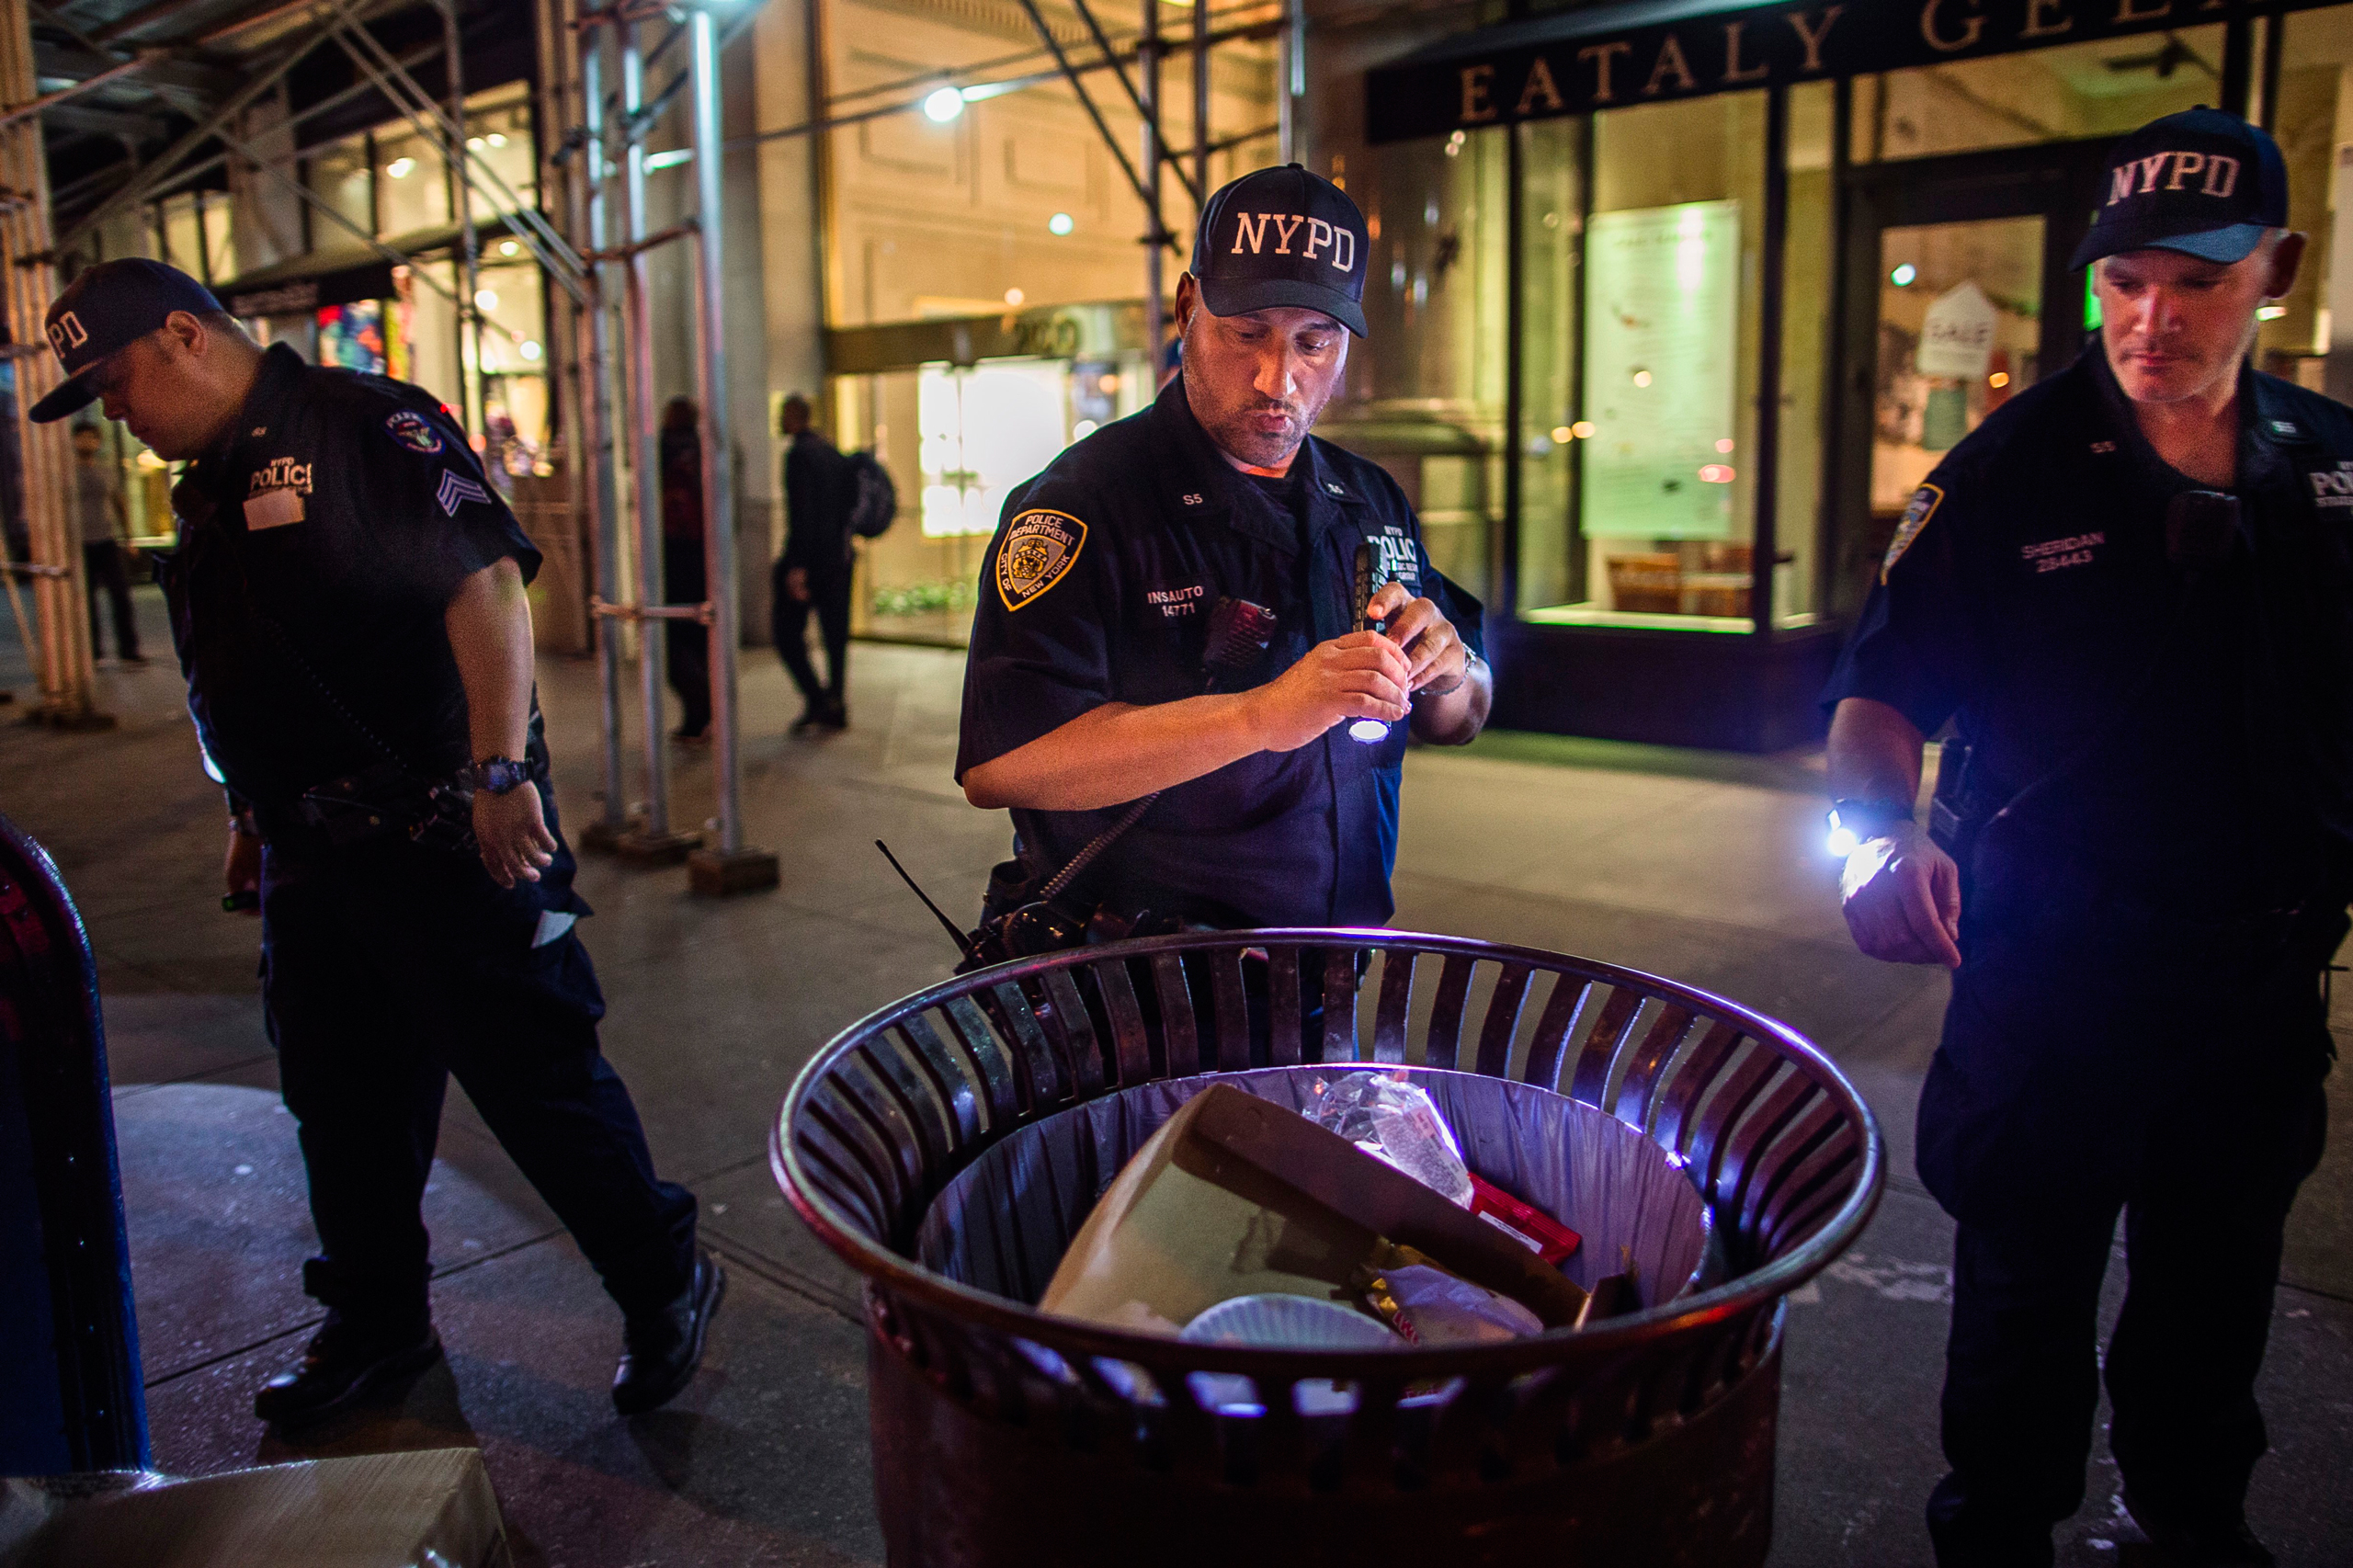 Police officers look for suspicious packages along Fifth Avenue near the scene of an explosion on West 23rd Street and 6th Avenue in Manhattan's Chelsea neighborhood in New York in the early hours of Sept. 18, 2016.